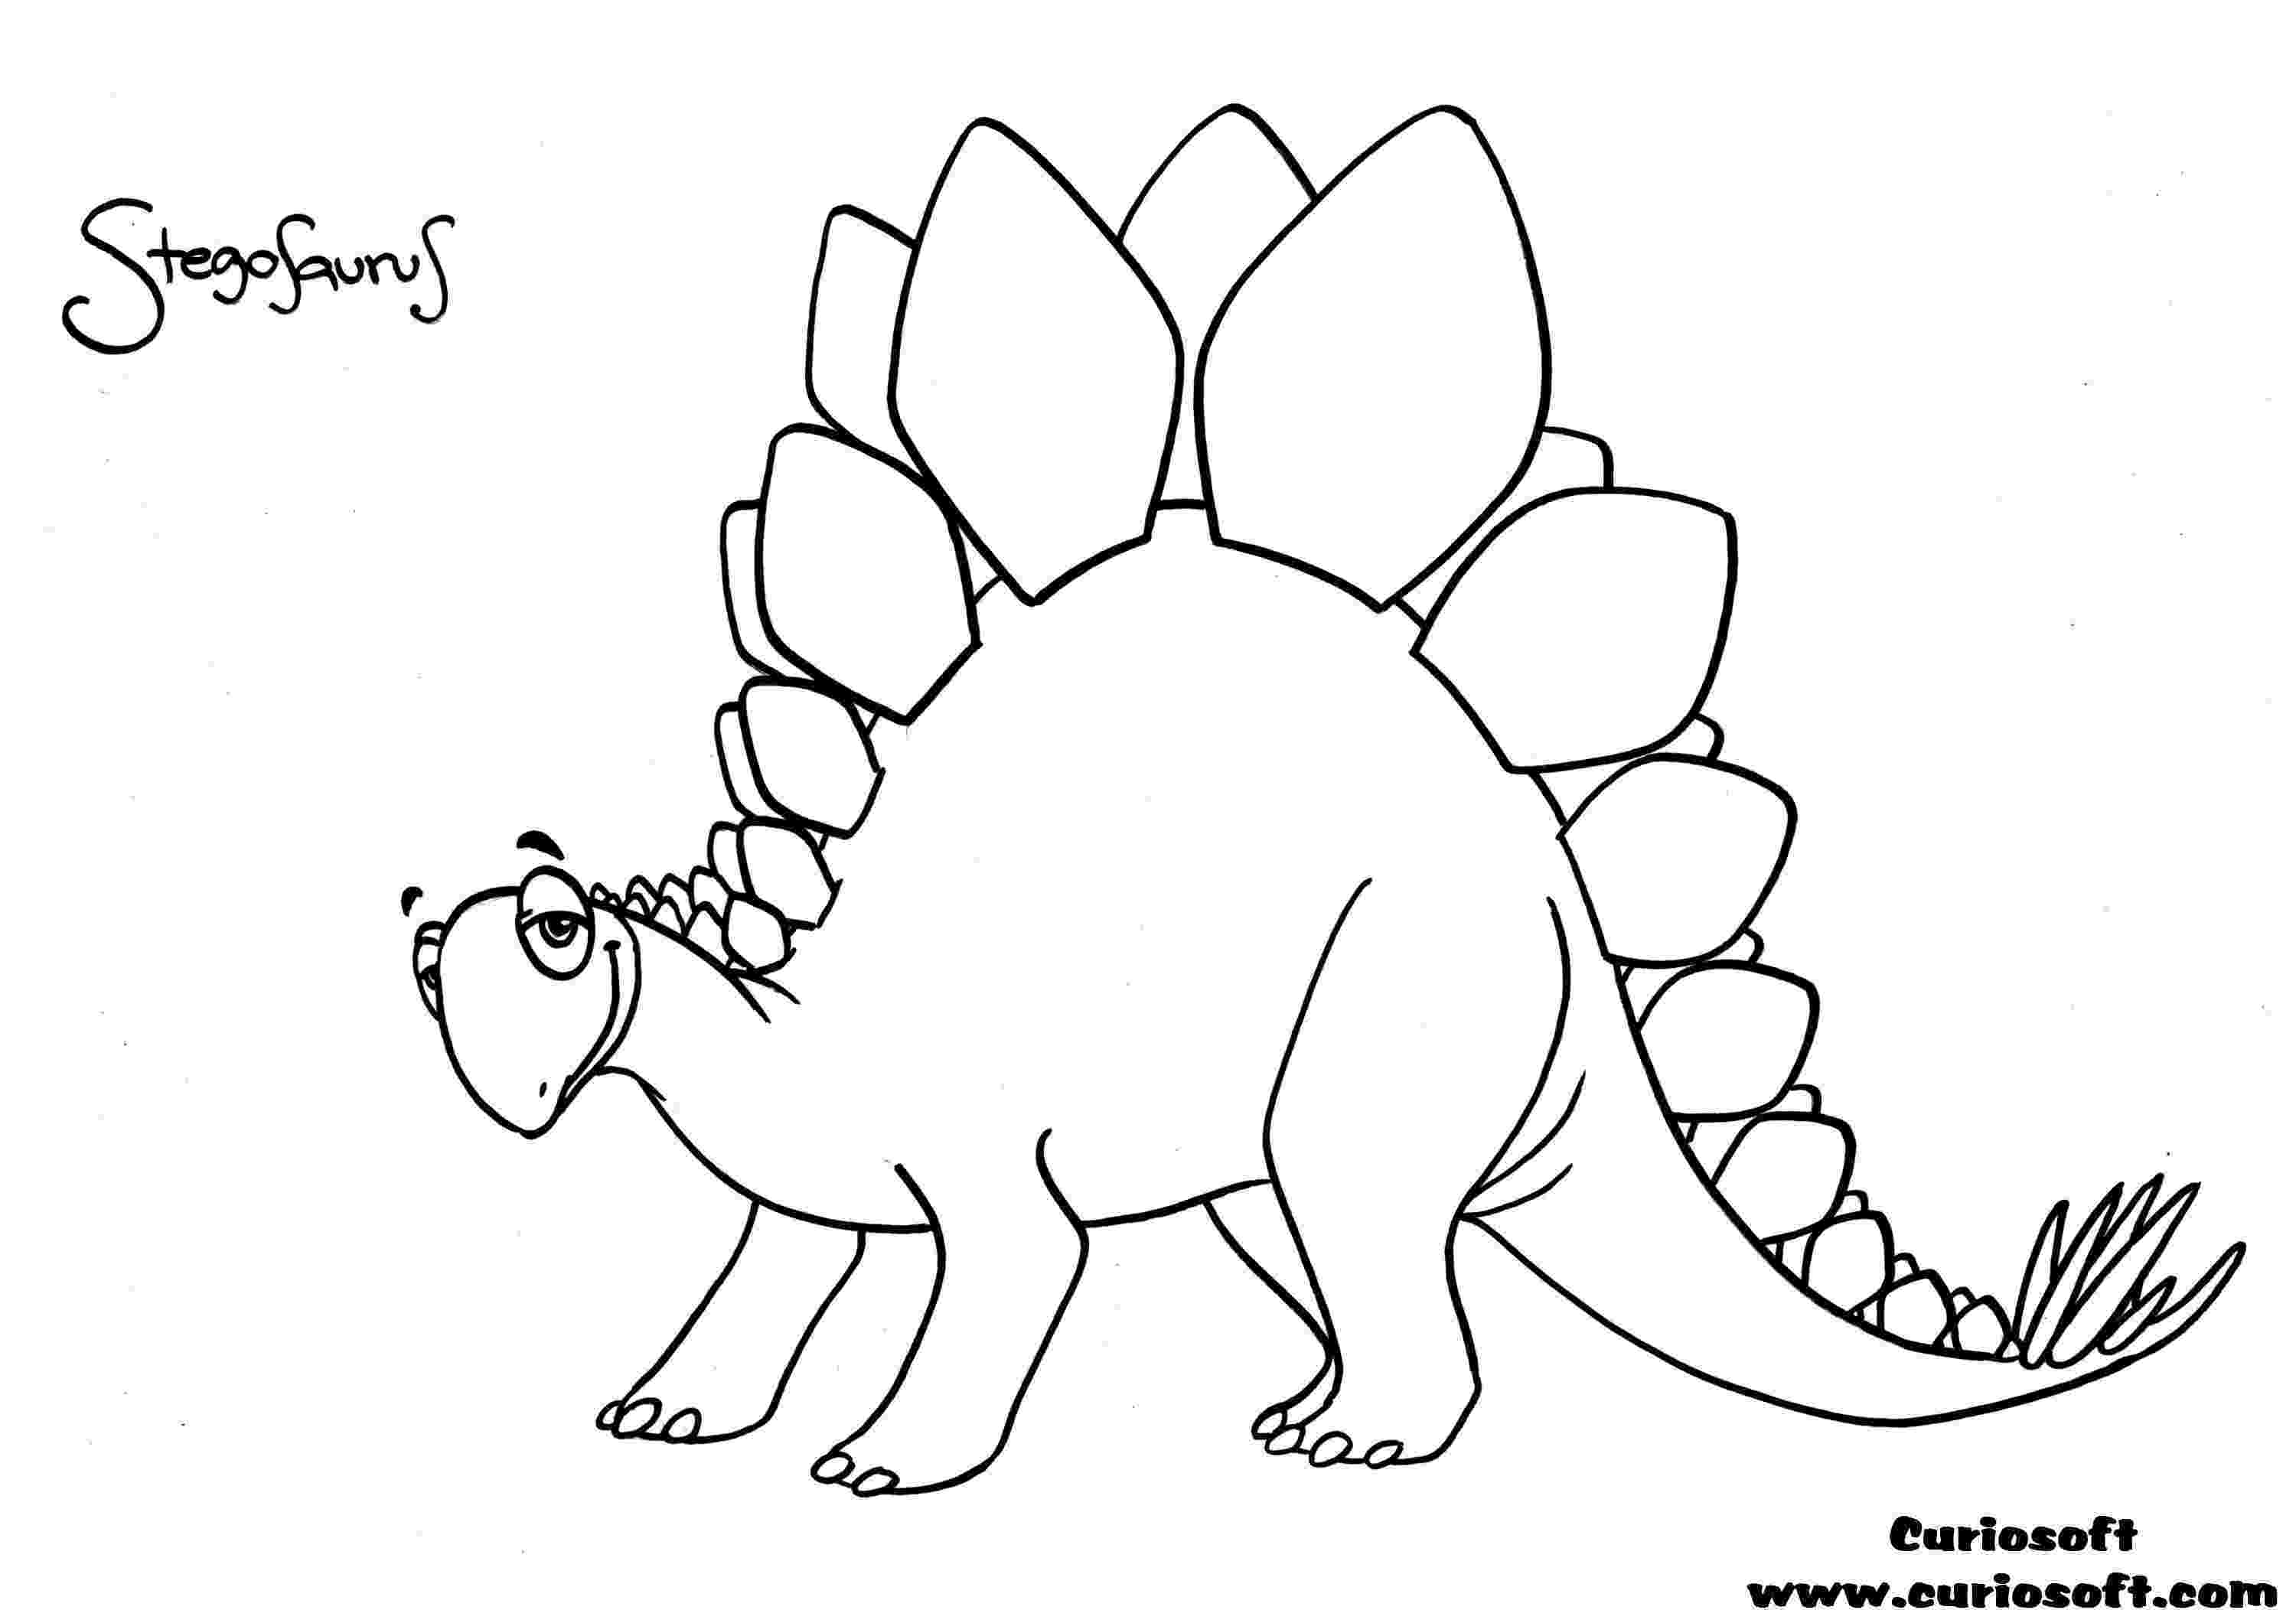 picture of a stegosaurus printable stegosaurus dinosaur coloring pages for kidsfree a of stegosaurus picture